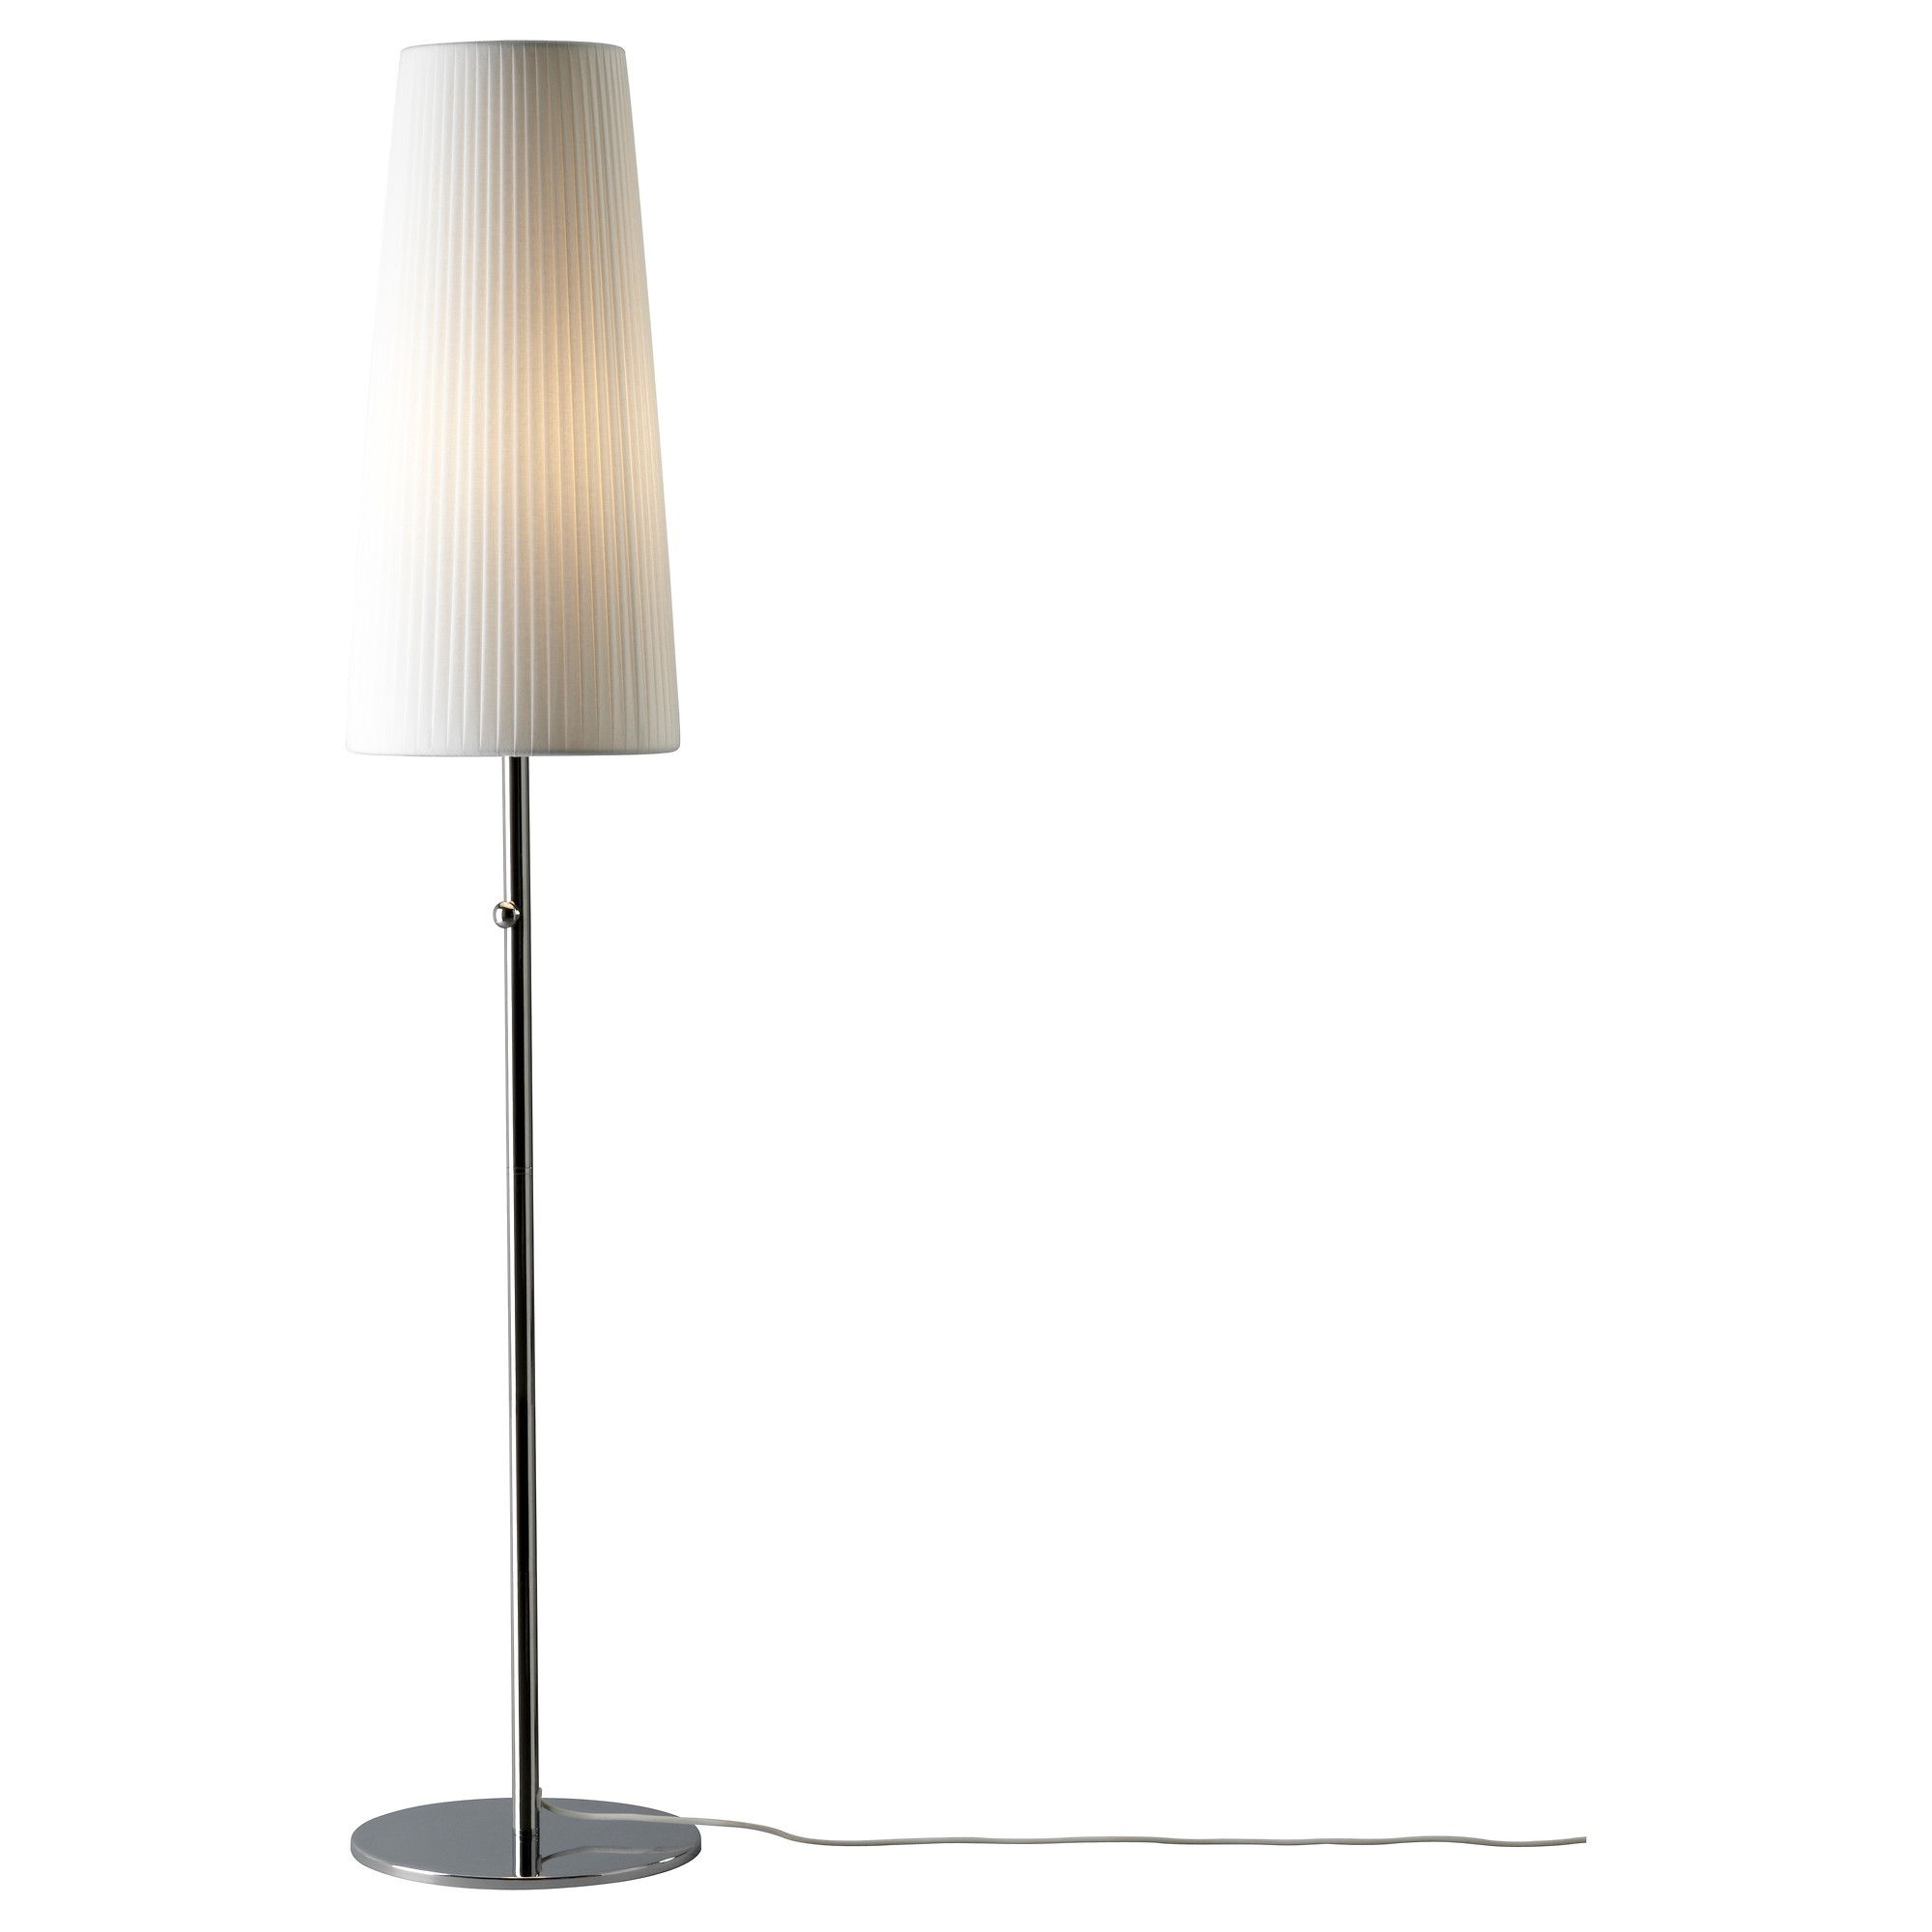 Ikea 365 lunta floor lamp chrome plated ikea house ikea 365 lunta floor lamp chrome plated ikea geotapseo Image collections